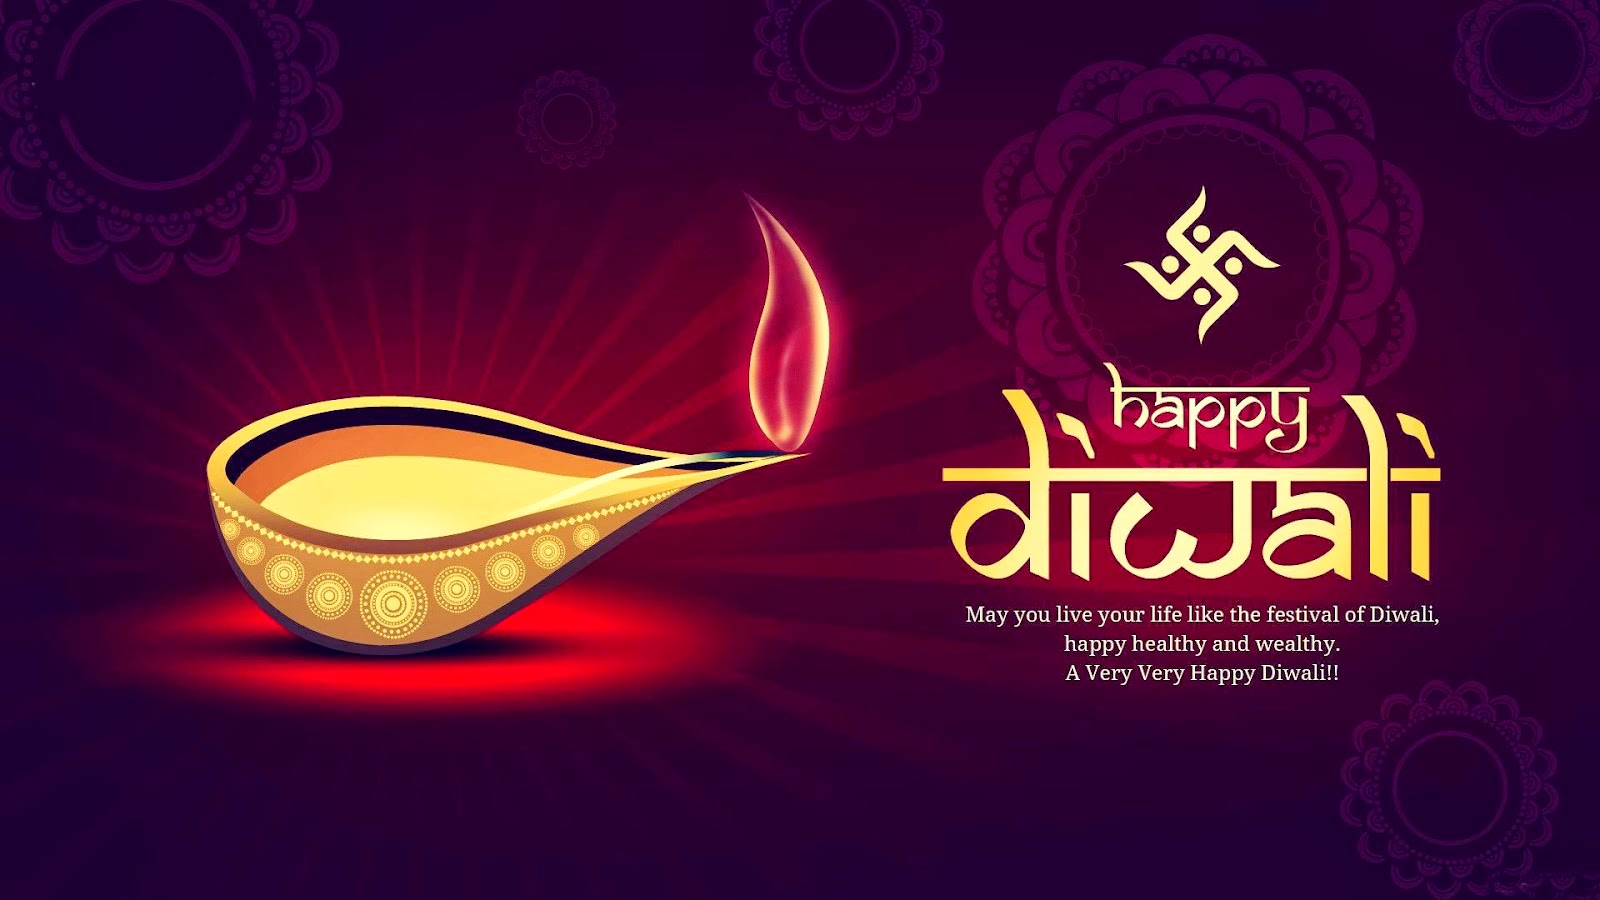 Diwali Greetings Diwali Wishes Wish You Happy Dipawali Google